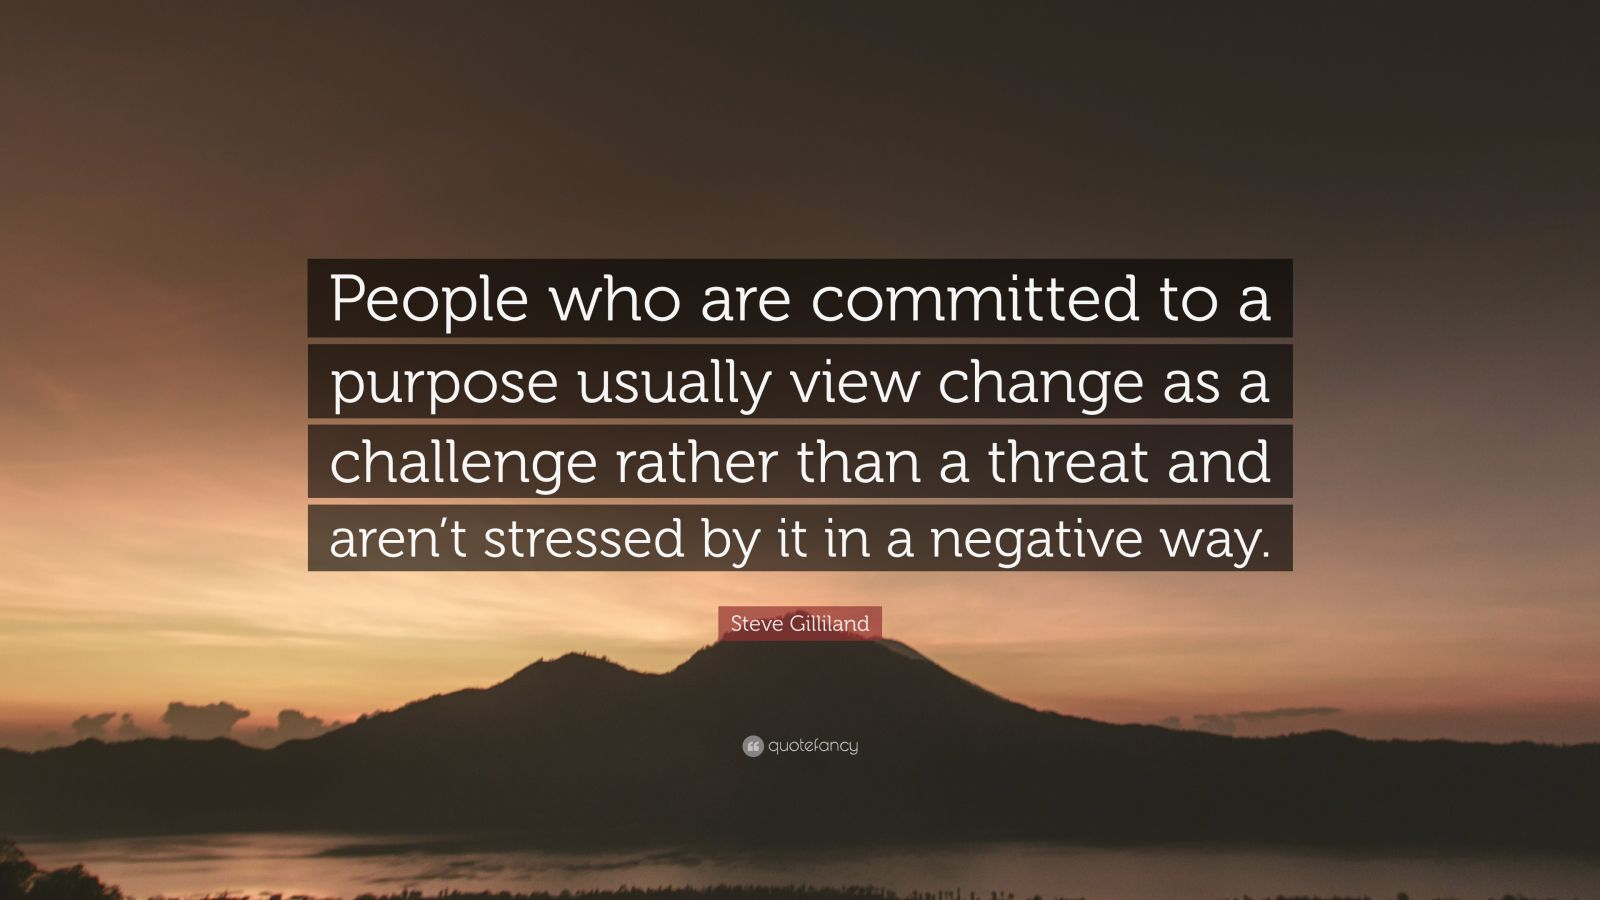 """Steve Gilliland Quote: """"People who are committed to a purpose usually view change as a challenge rather than a threat and aren't stressed by it in a negative way."""""""